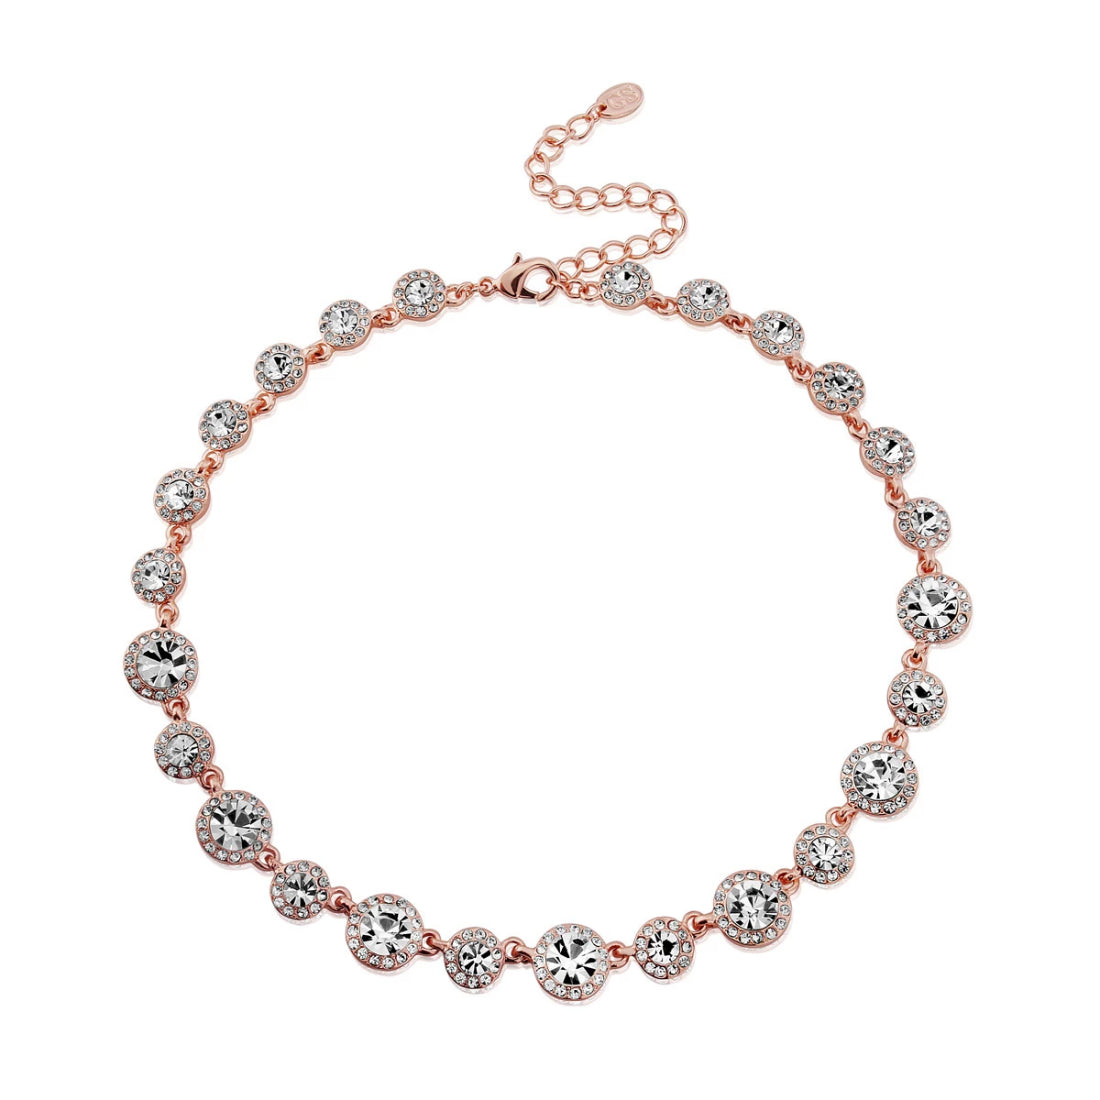 Rose Gold Starlet crystal wedding necklace